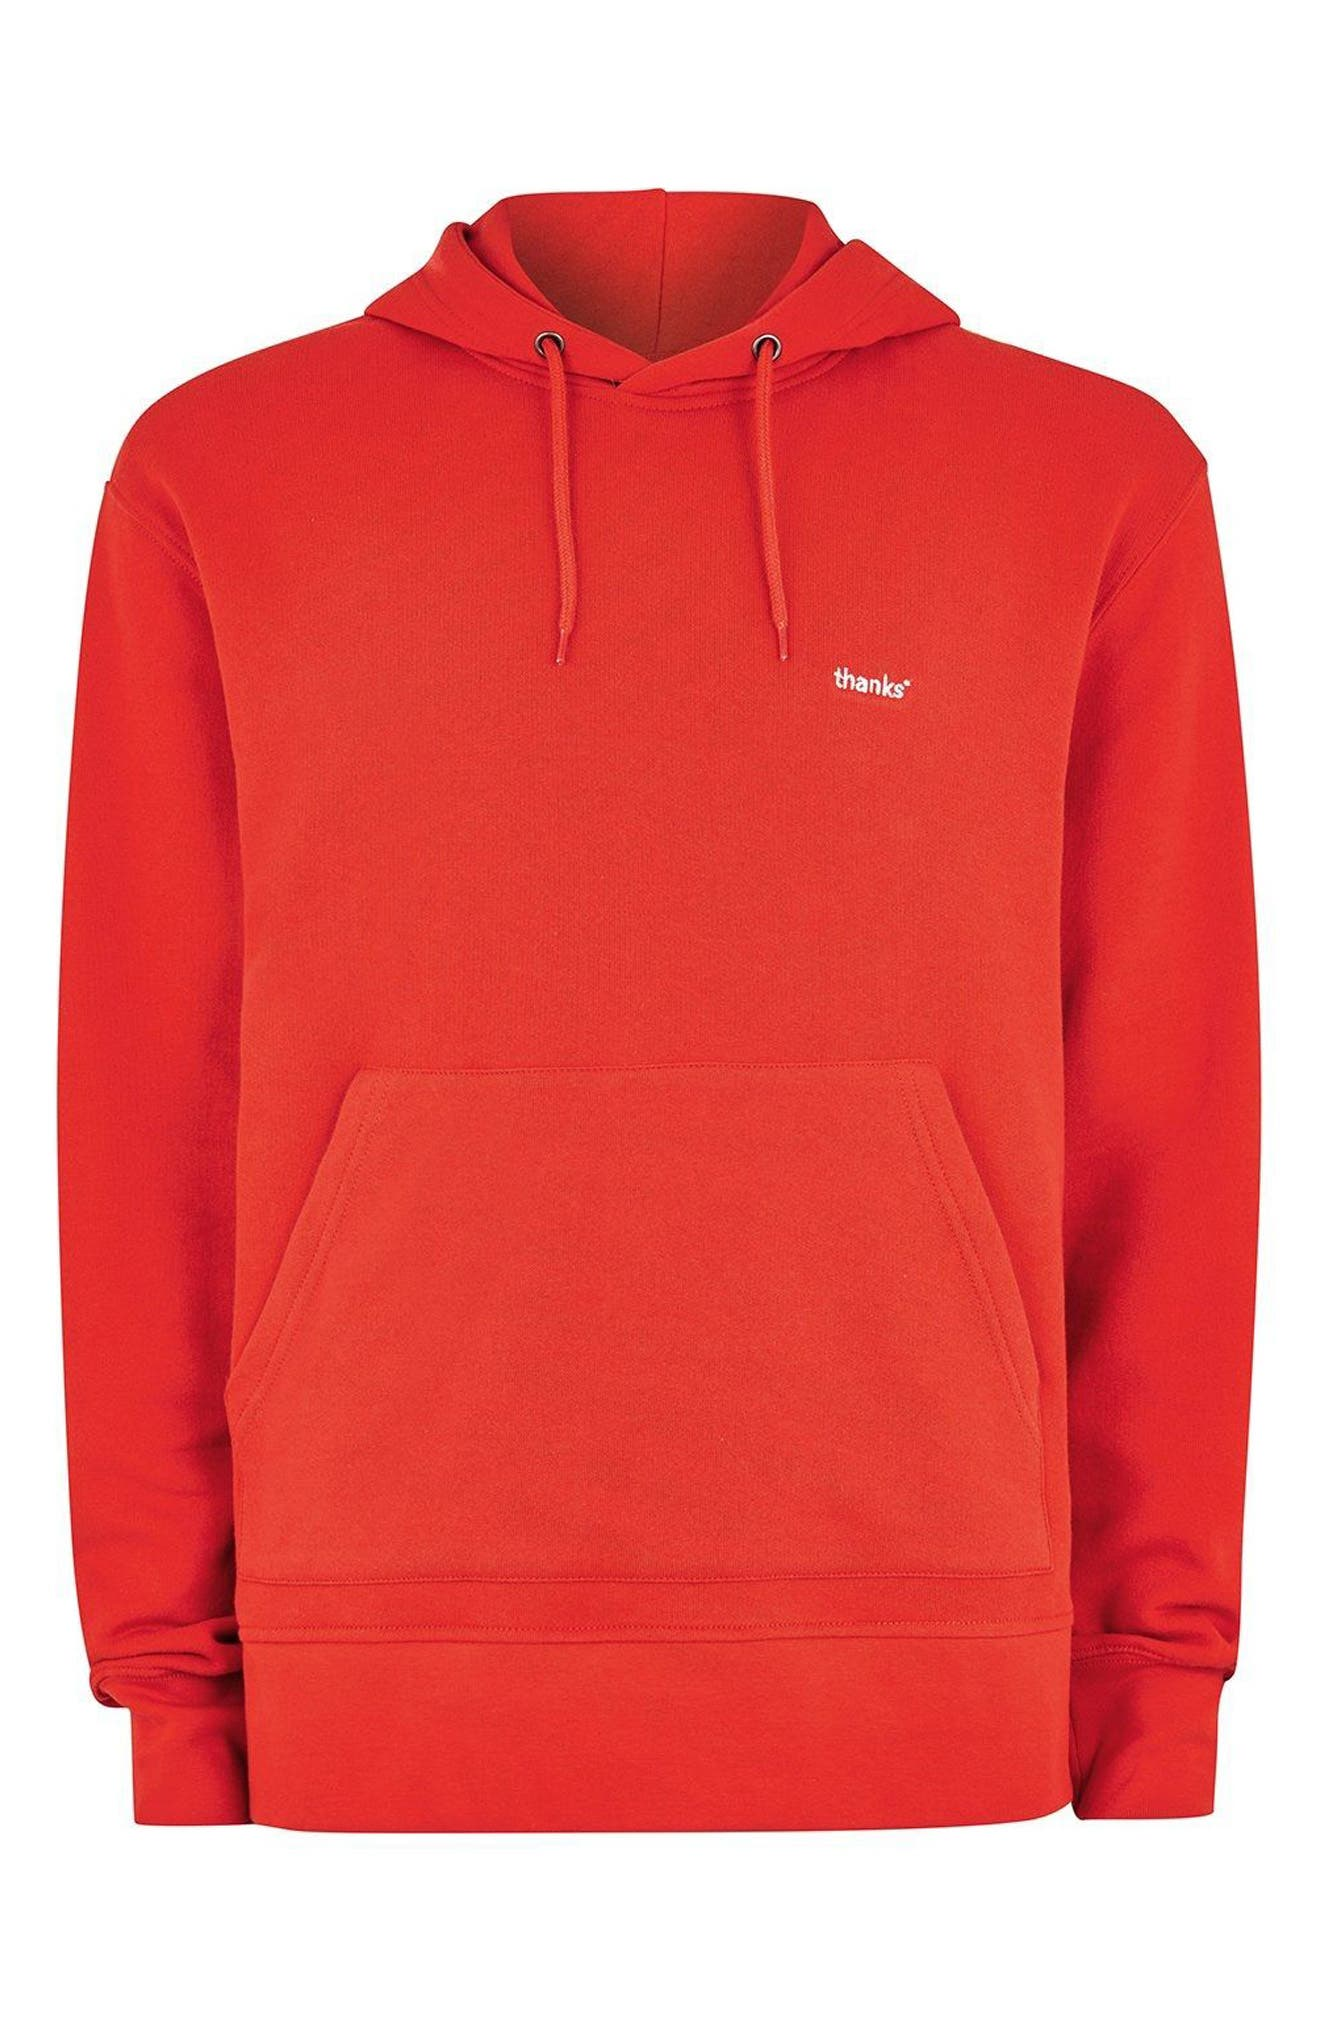 Classic Fit Tristan Thanks Embroidered Hoodie,                             Alternate thumbnail 4, color,                             Red Multi